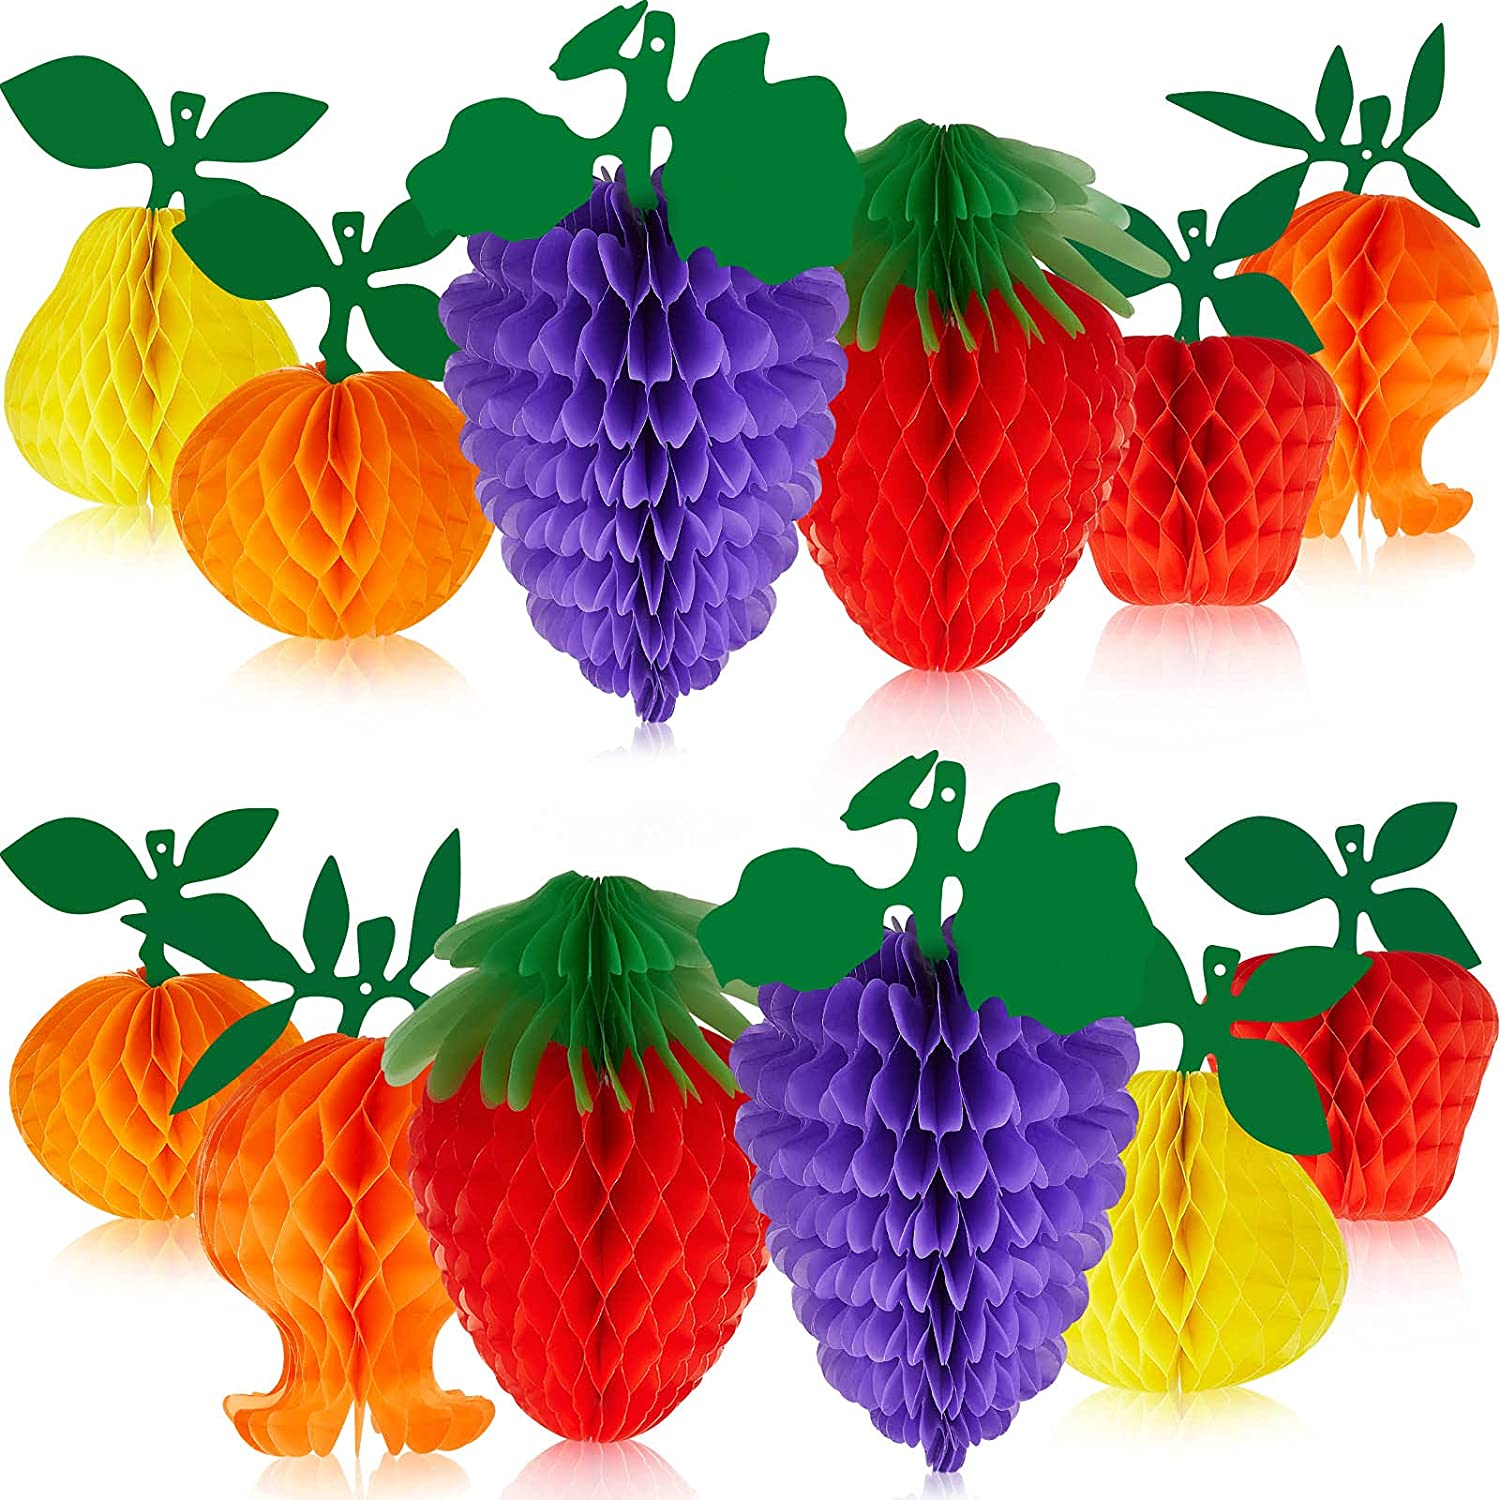 Outus 12 Pieces Fruit Honeycomb Decorations Hanging Tissue Paper Ball Pineapple Strawberry Hawaiian Table Centerpieces for Hawaiian Tropical Luau Jungle Party Decorations Supplies Favors